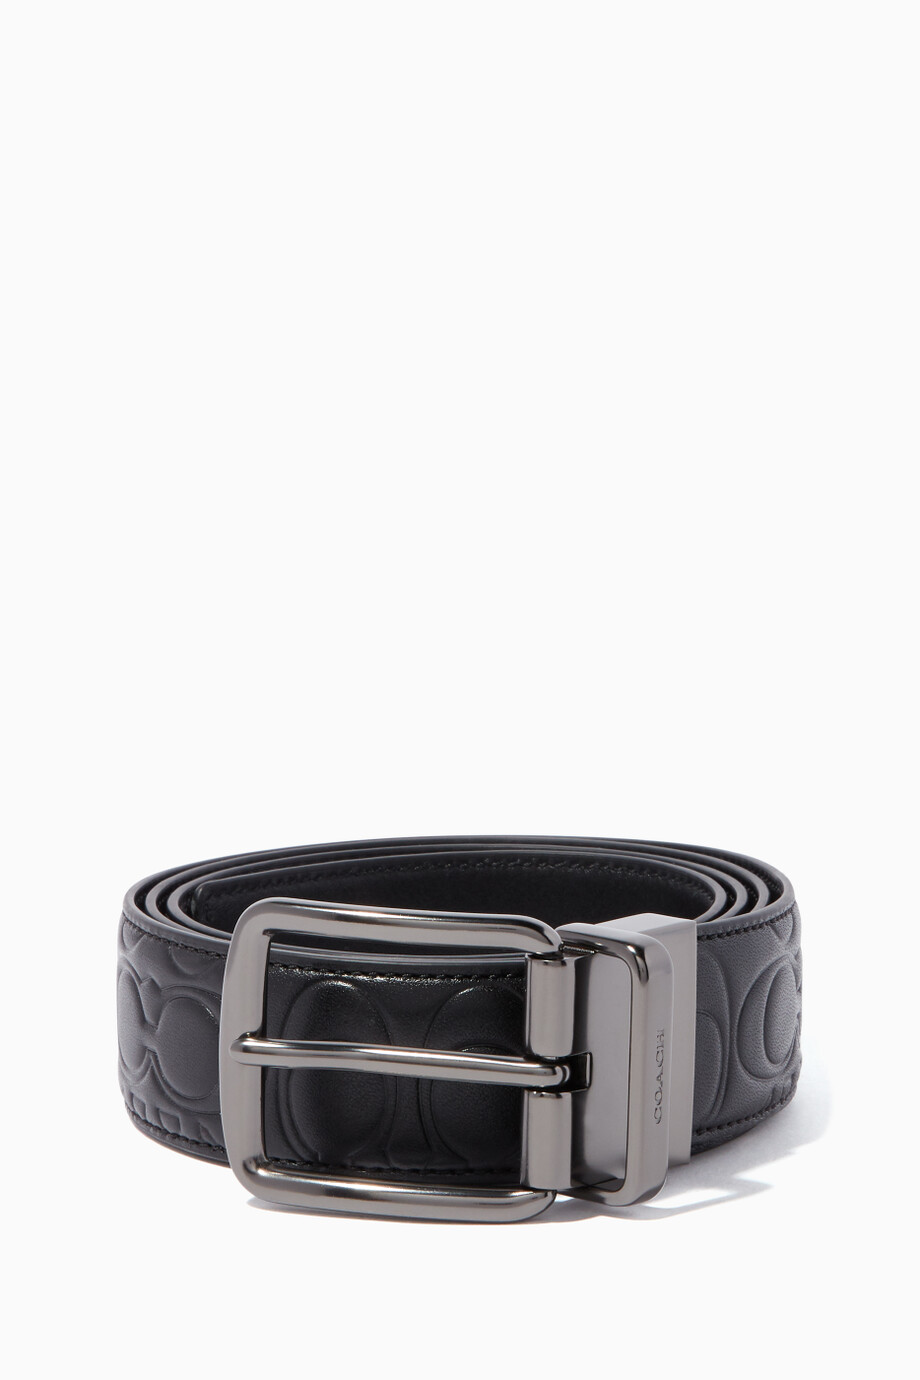 e55ab7ce0f1bd MenAccessoriesBeltsCasual Belts. Black Signature Harness Reversible Belt  Black Signature Harness Reversible Belt. Coach